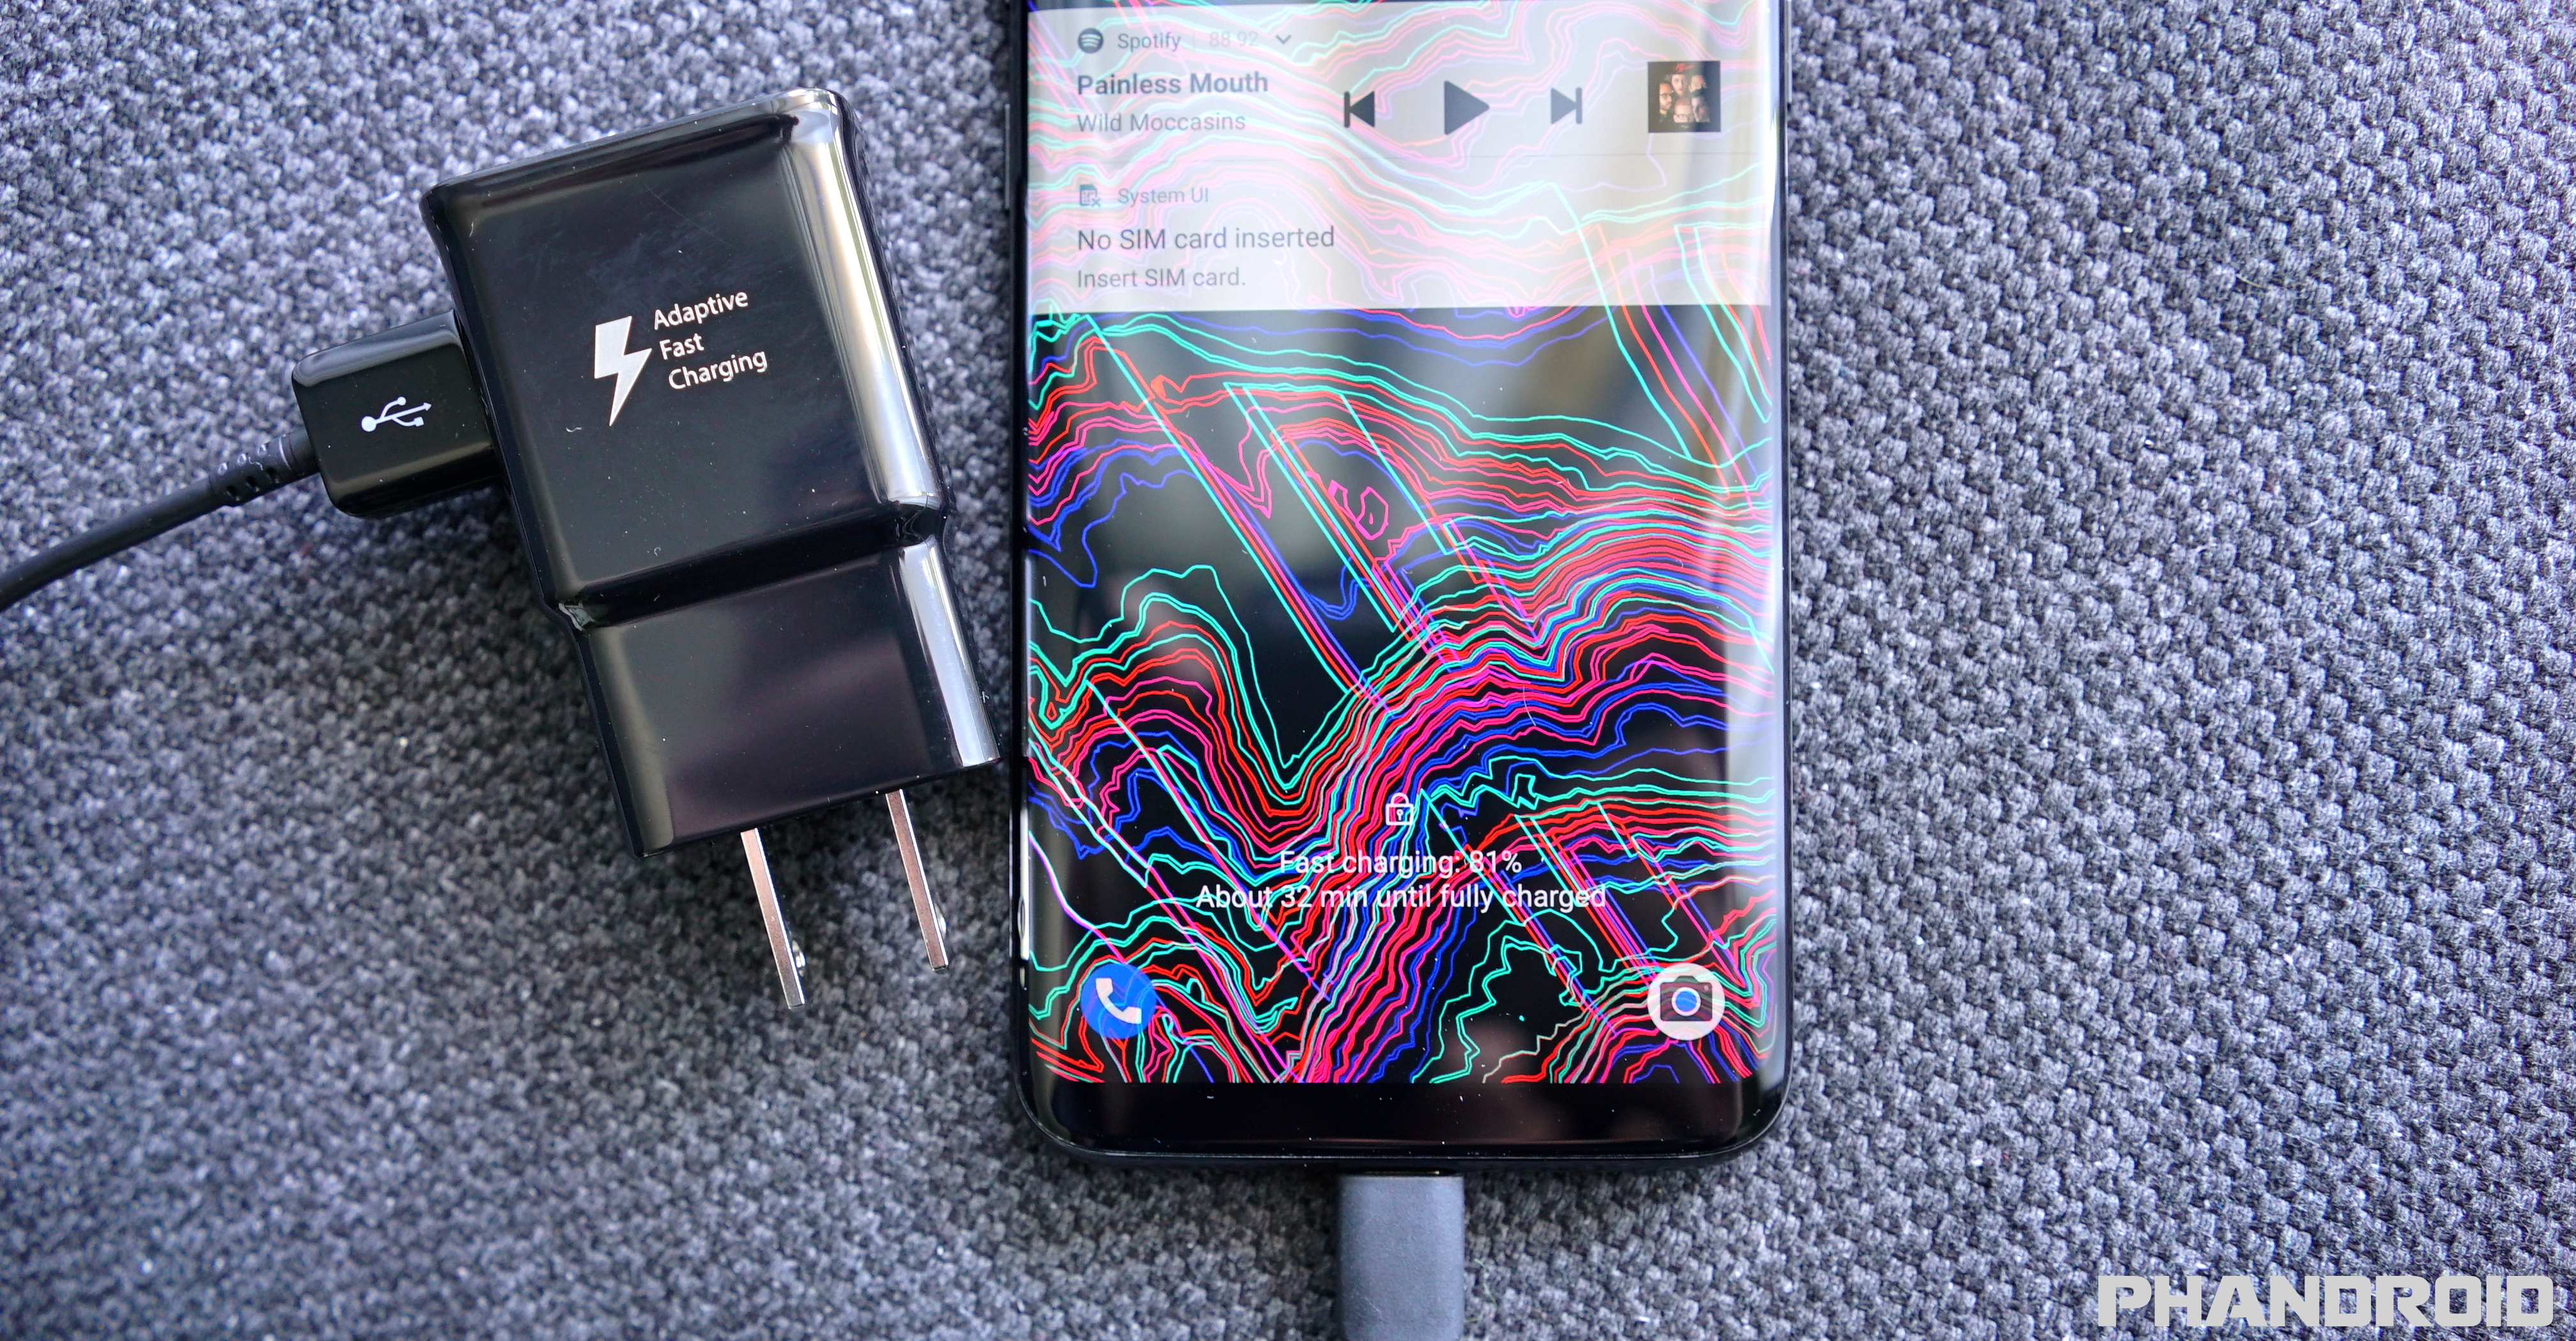 PSA: The Galaxy S8 and S8+ won't Fast Charge while you're using it